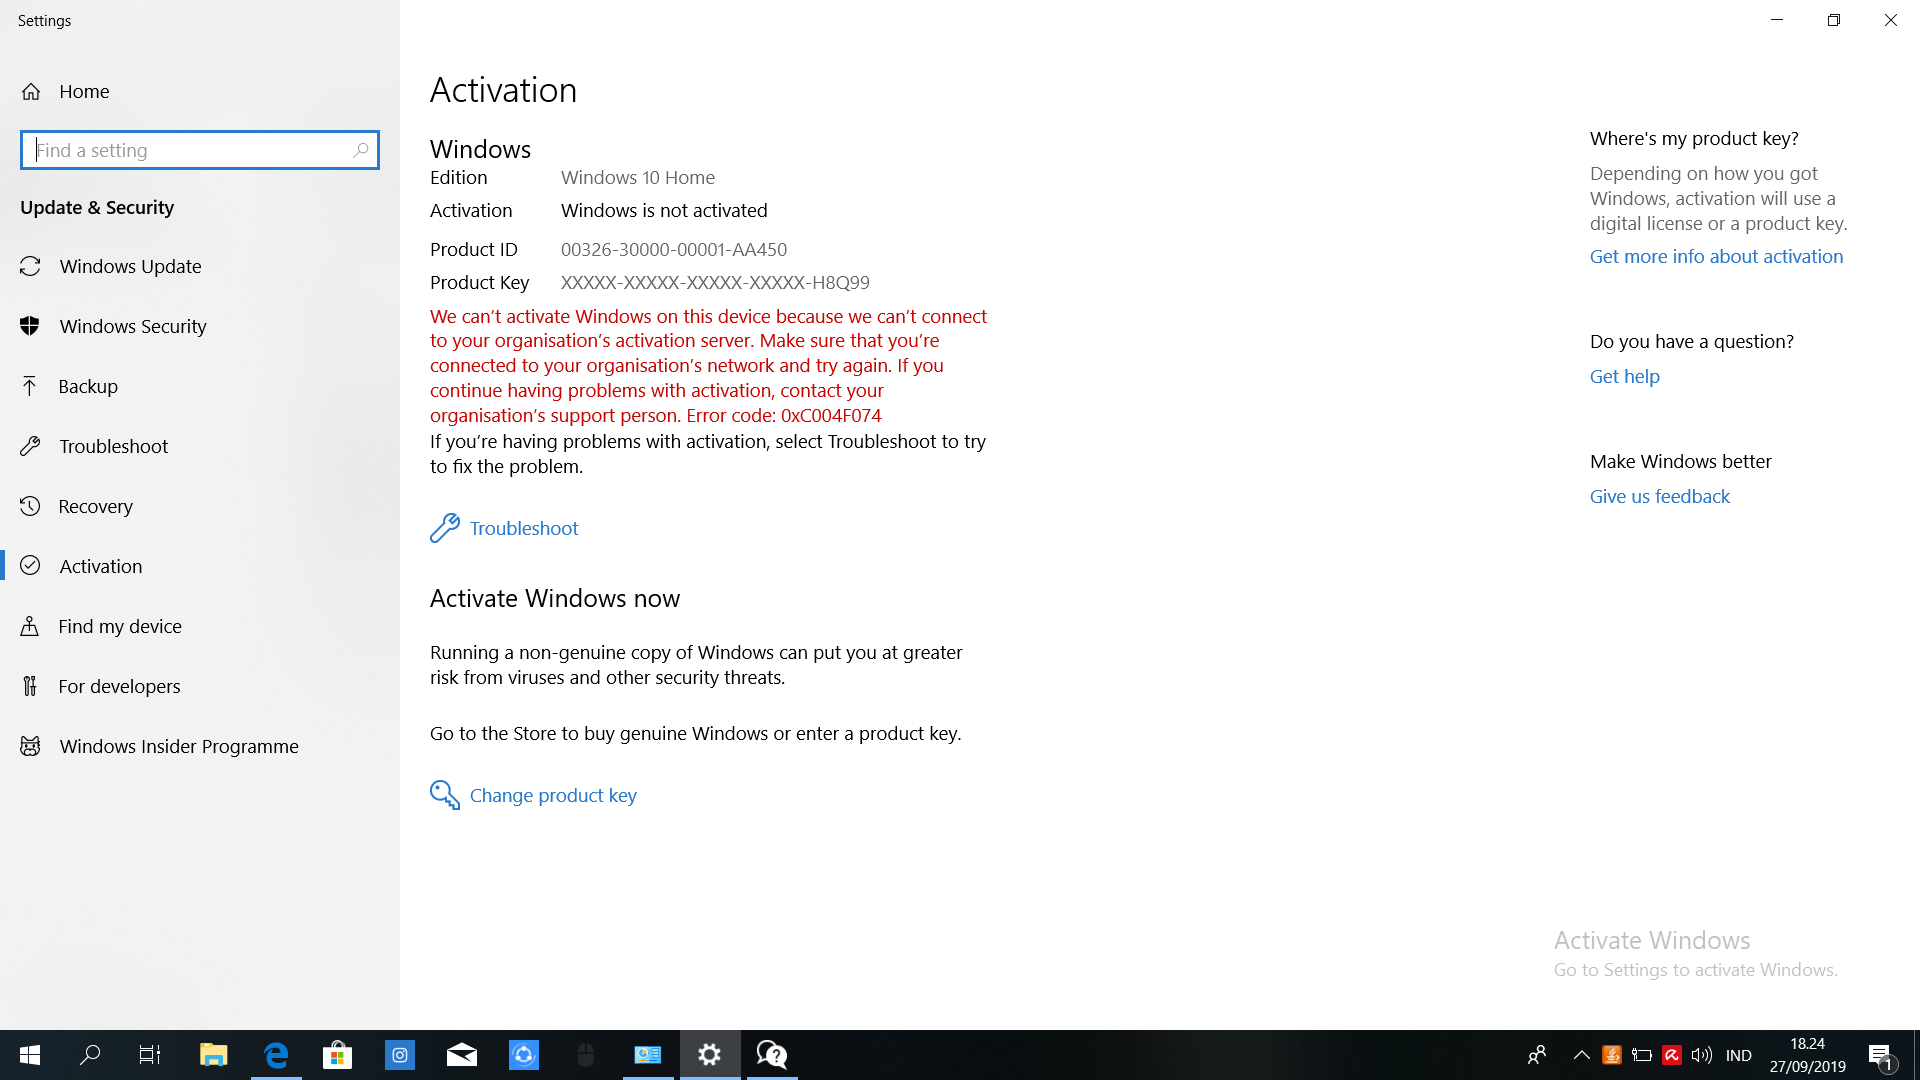 Hey can anybody help me to activate my windows 10 home? 8f9b83df-ca40-4f4f-86f2-2bc909dadad7?upload=true.png